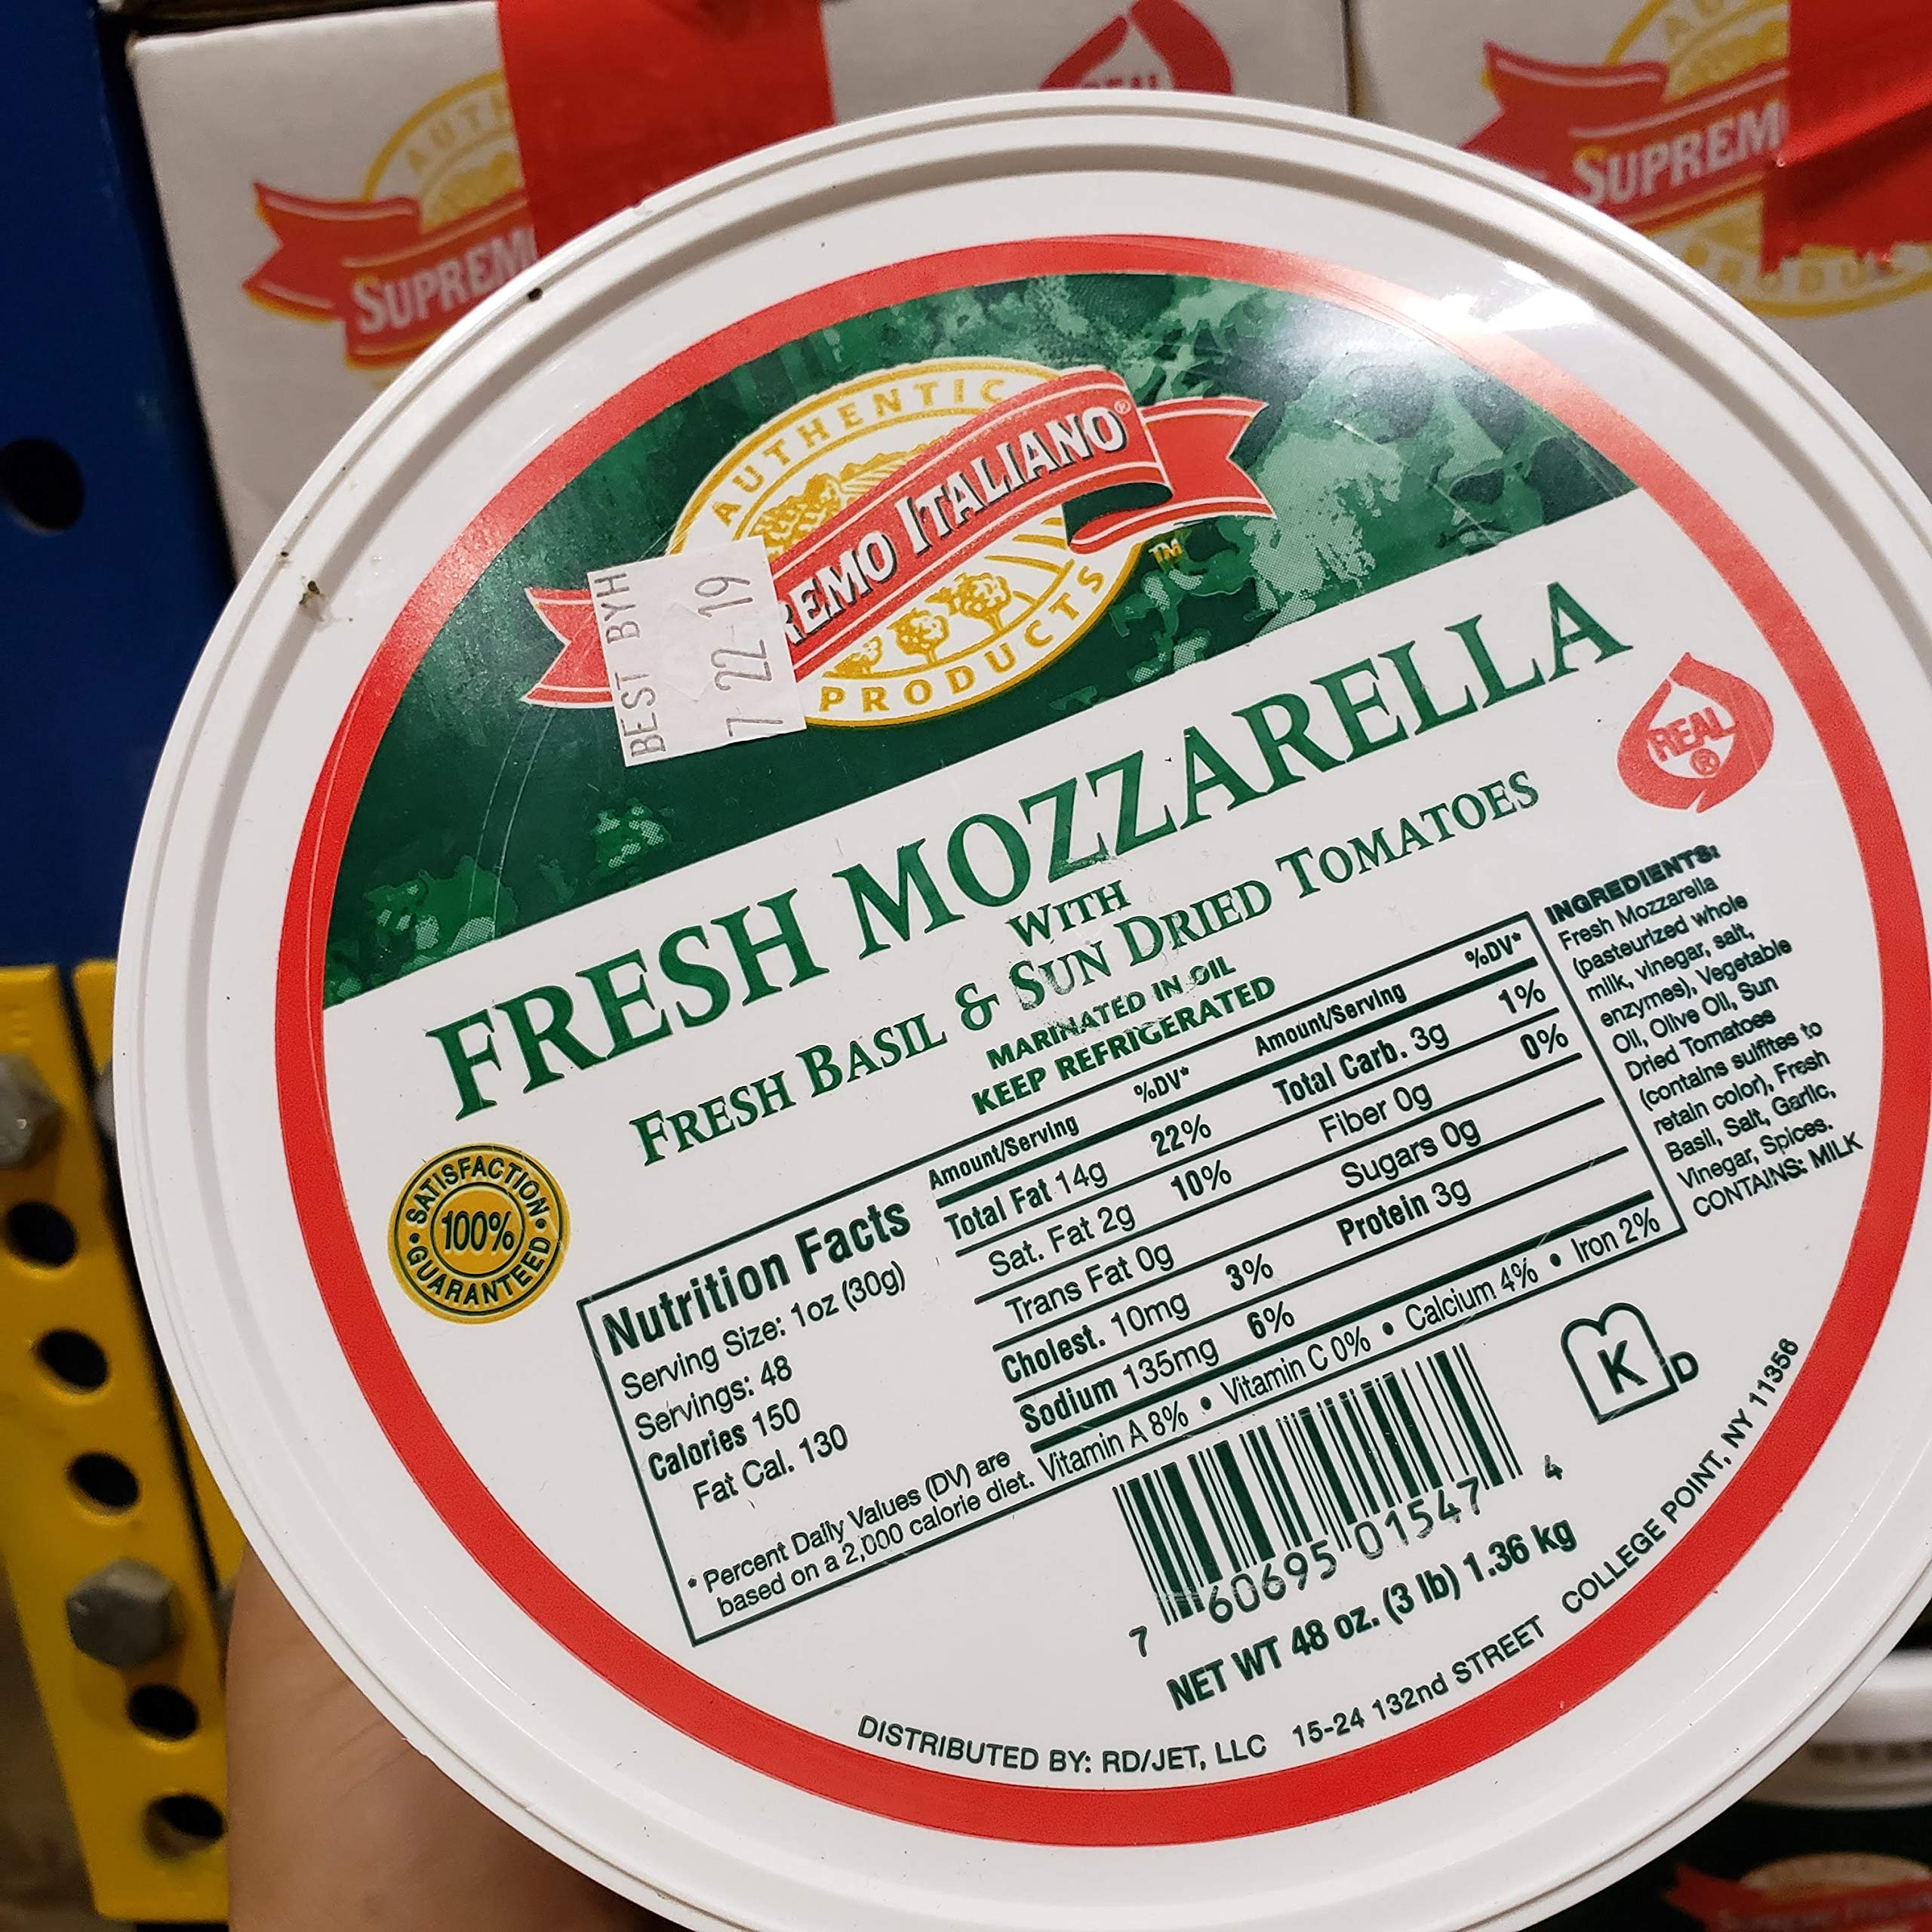 Supreme Italiano Fresh Mozzarella 48 oz X 2 packs Total 6lb Fresh Basil and Sun Dried Tomatoes